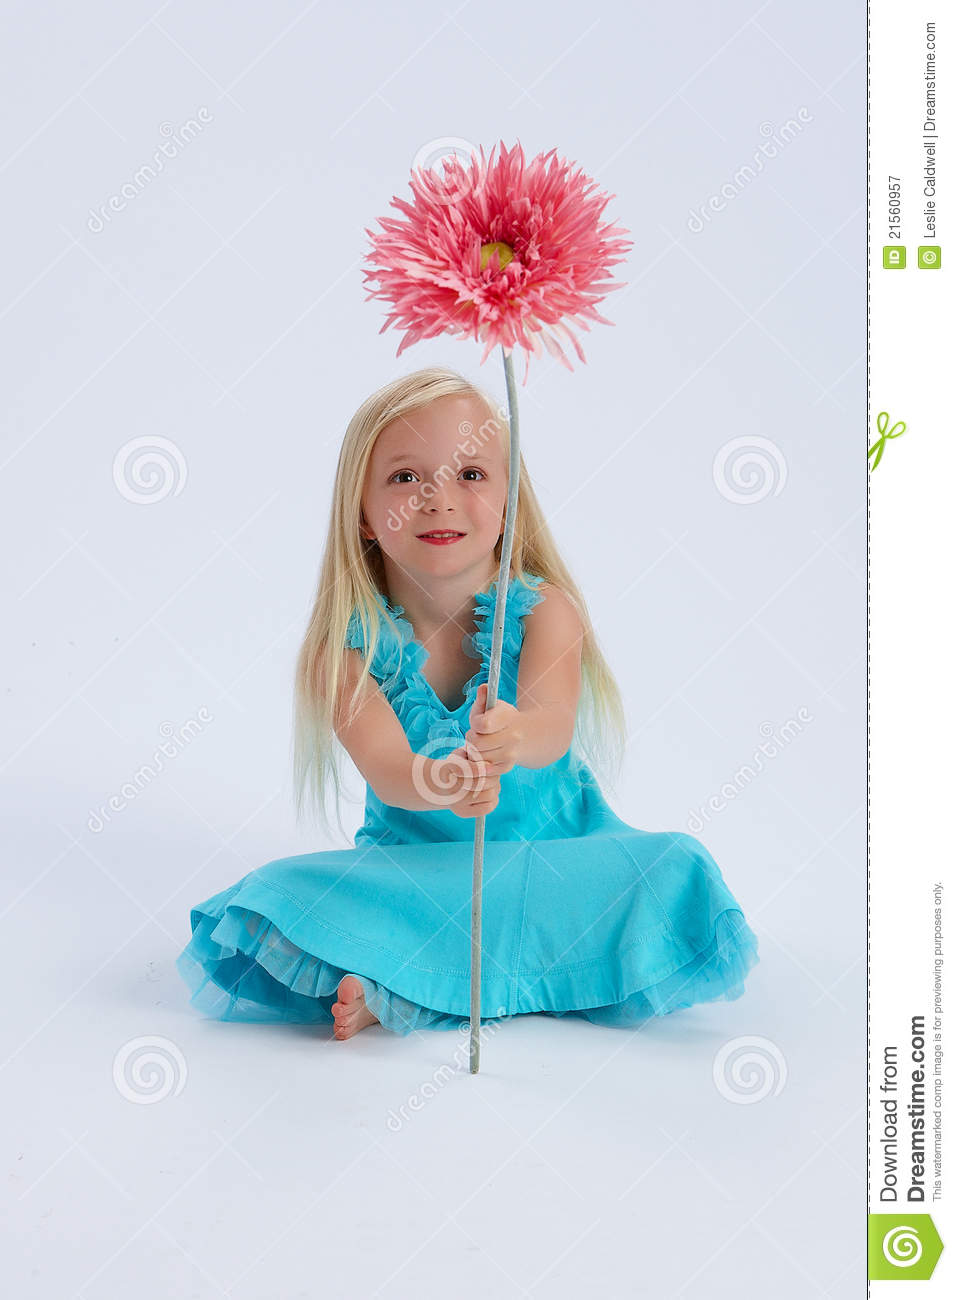 Cute girl with large flower